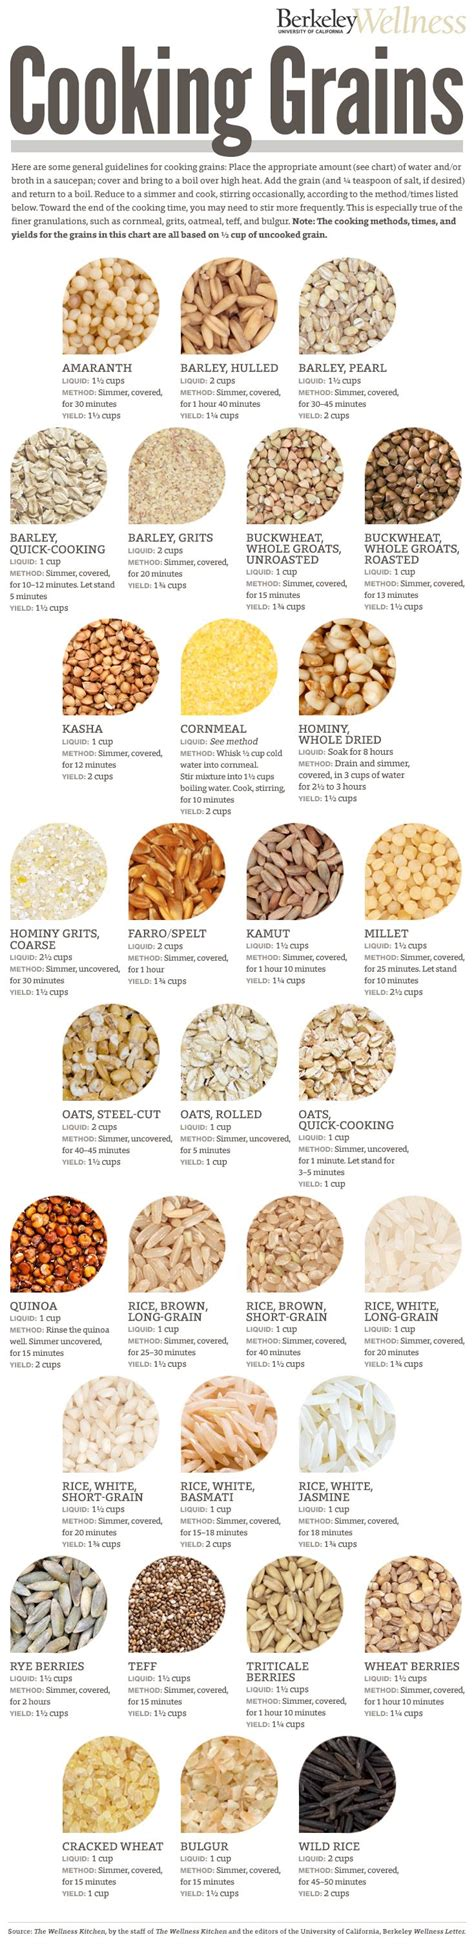 whole grains uses grains especially whole grains are of vitamins